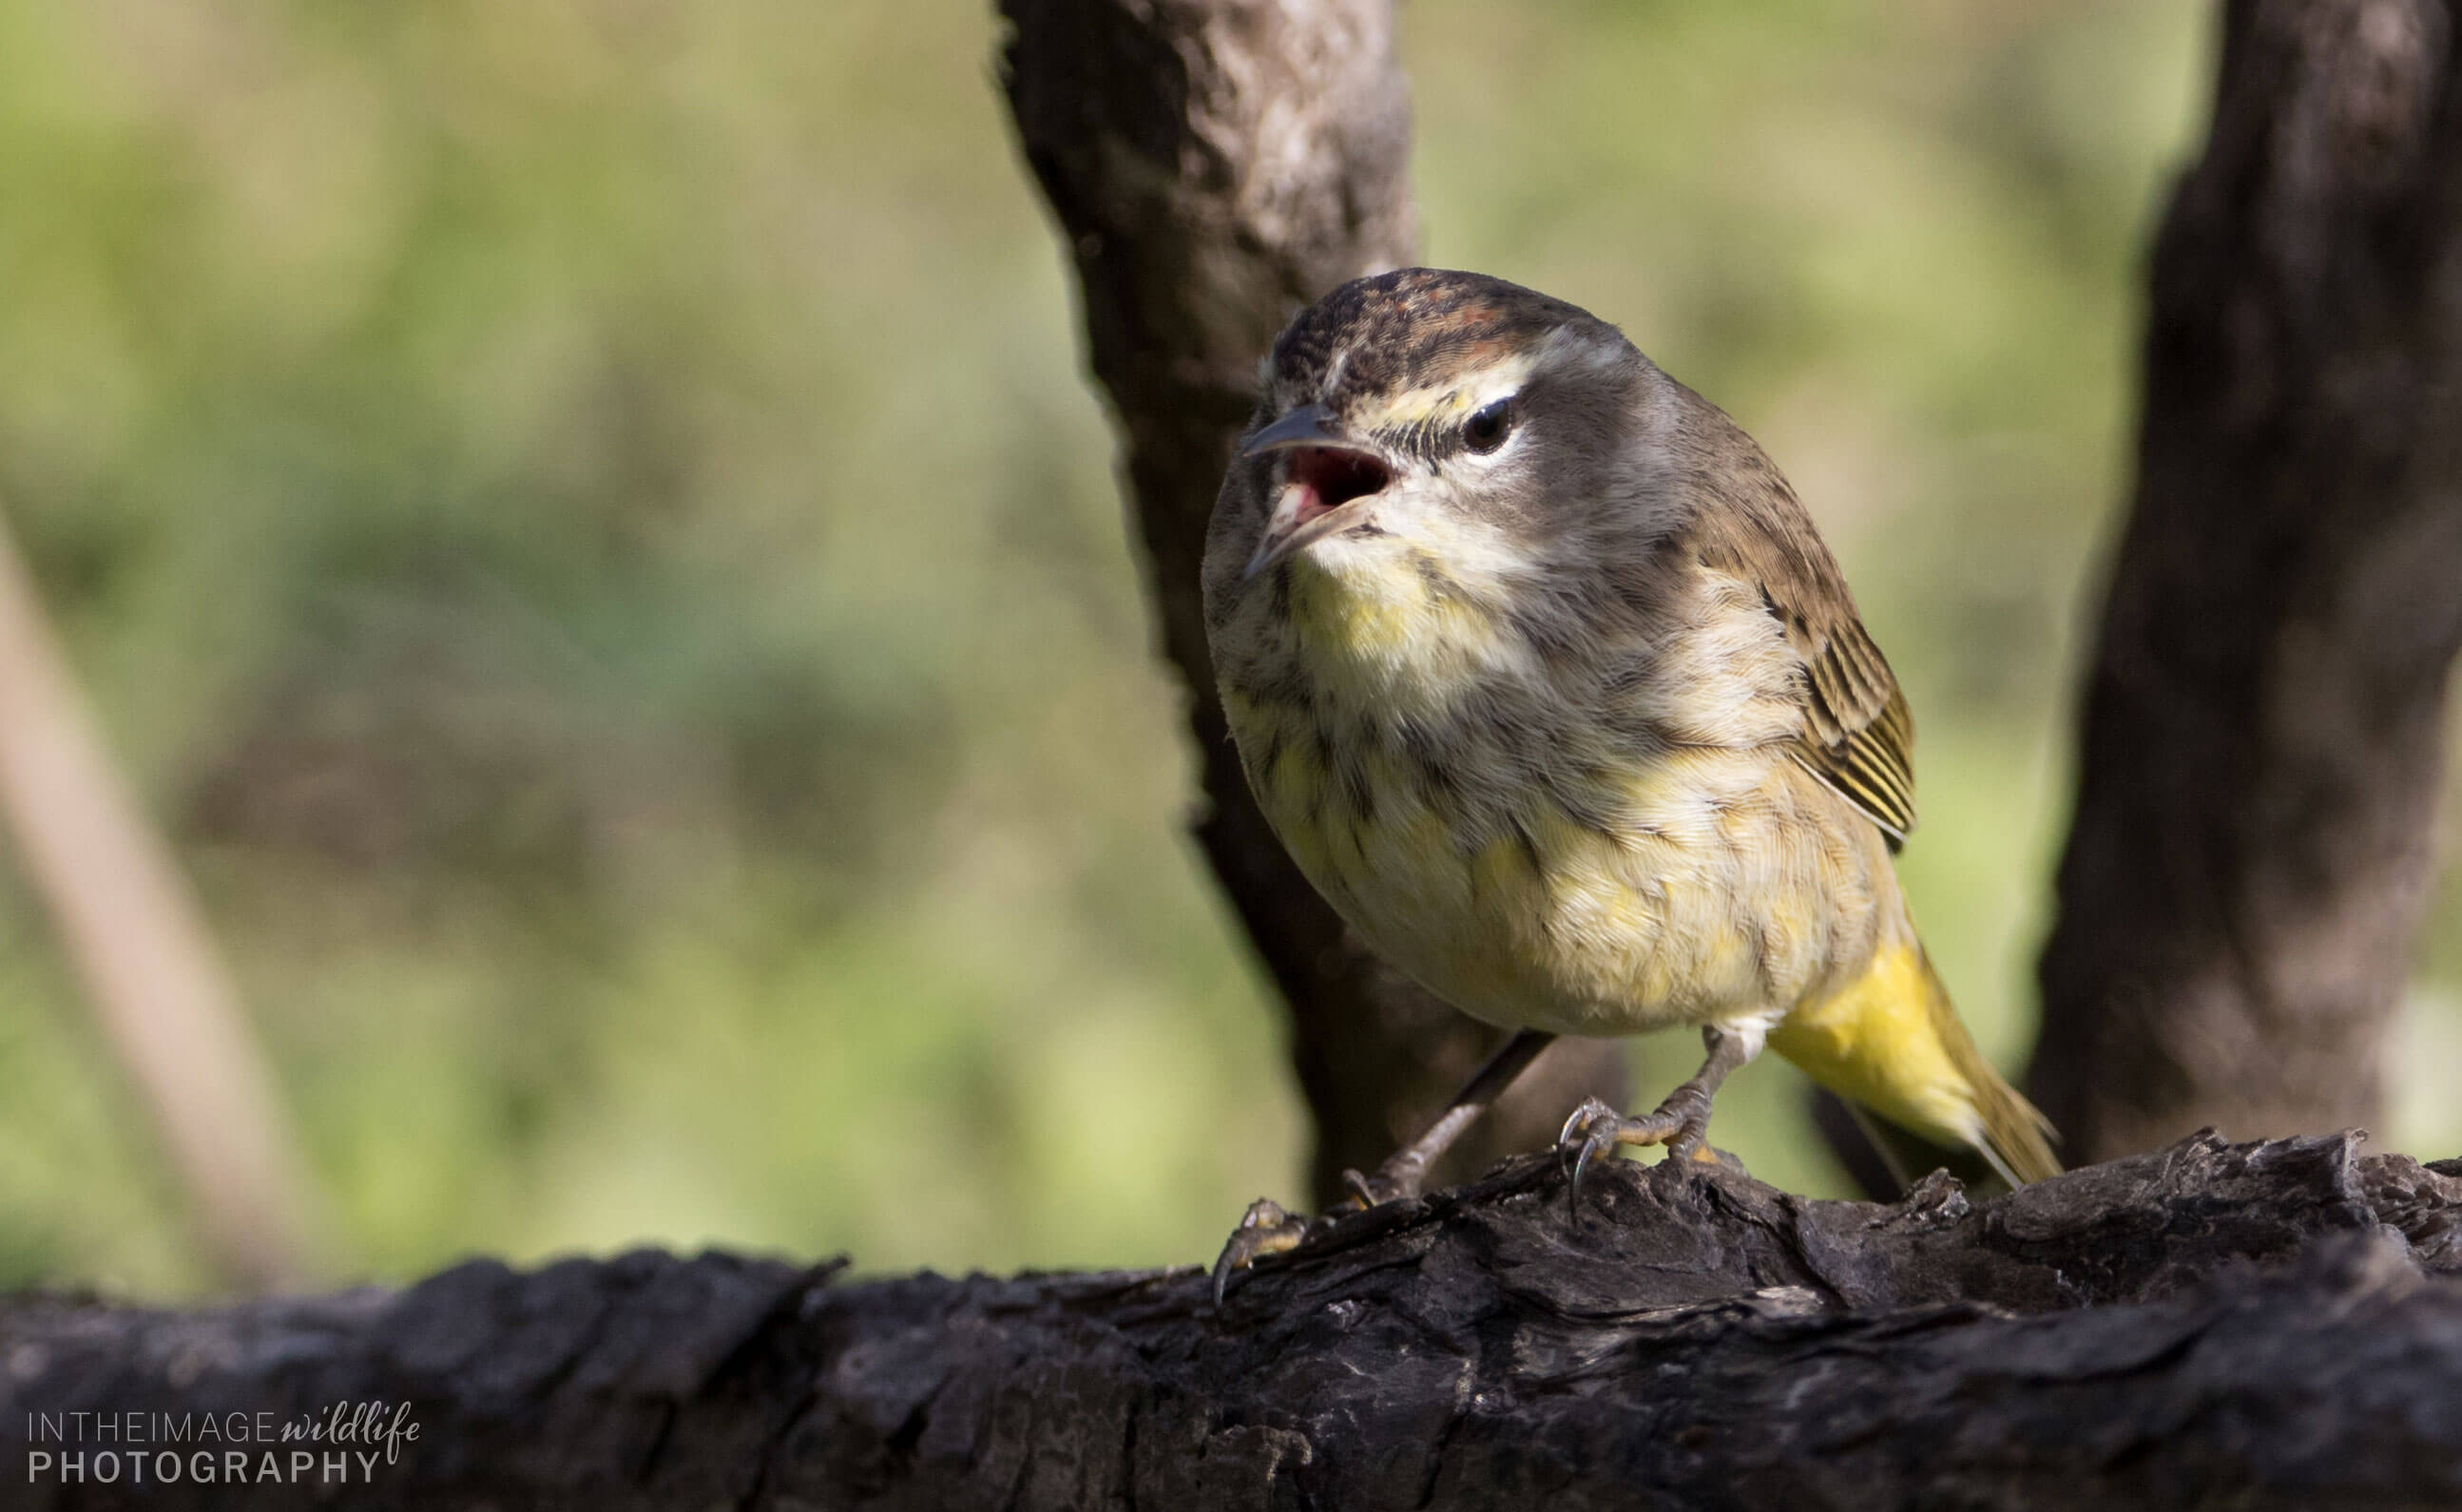 In the Image Wildlife Photography Little Bird Singing